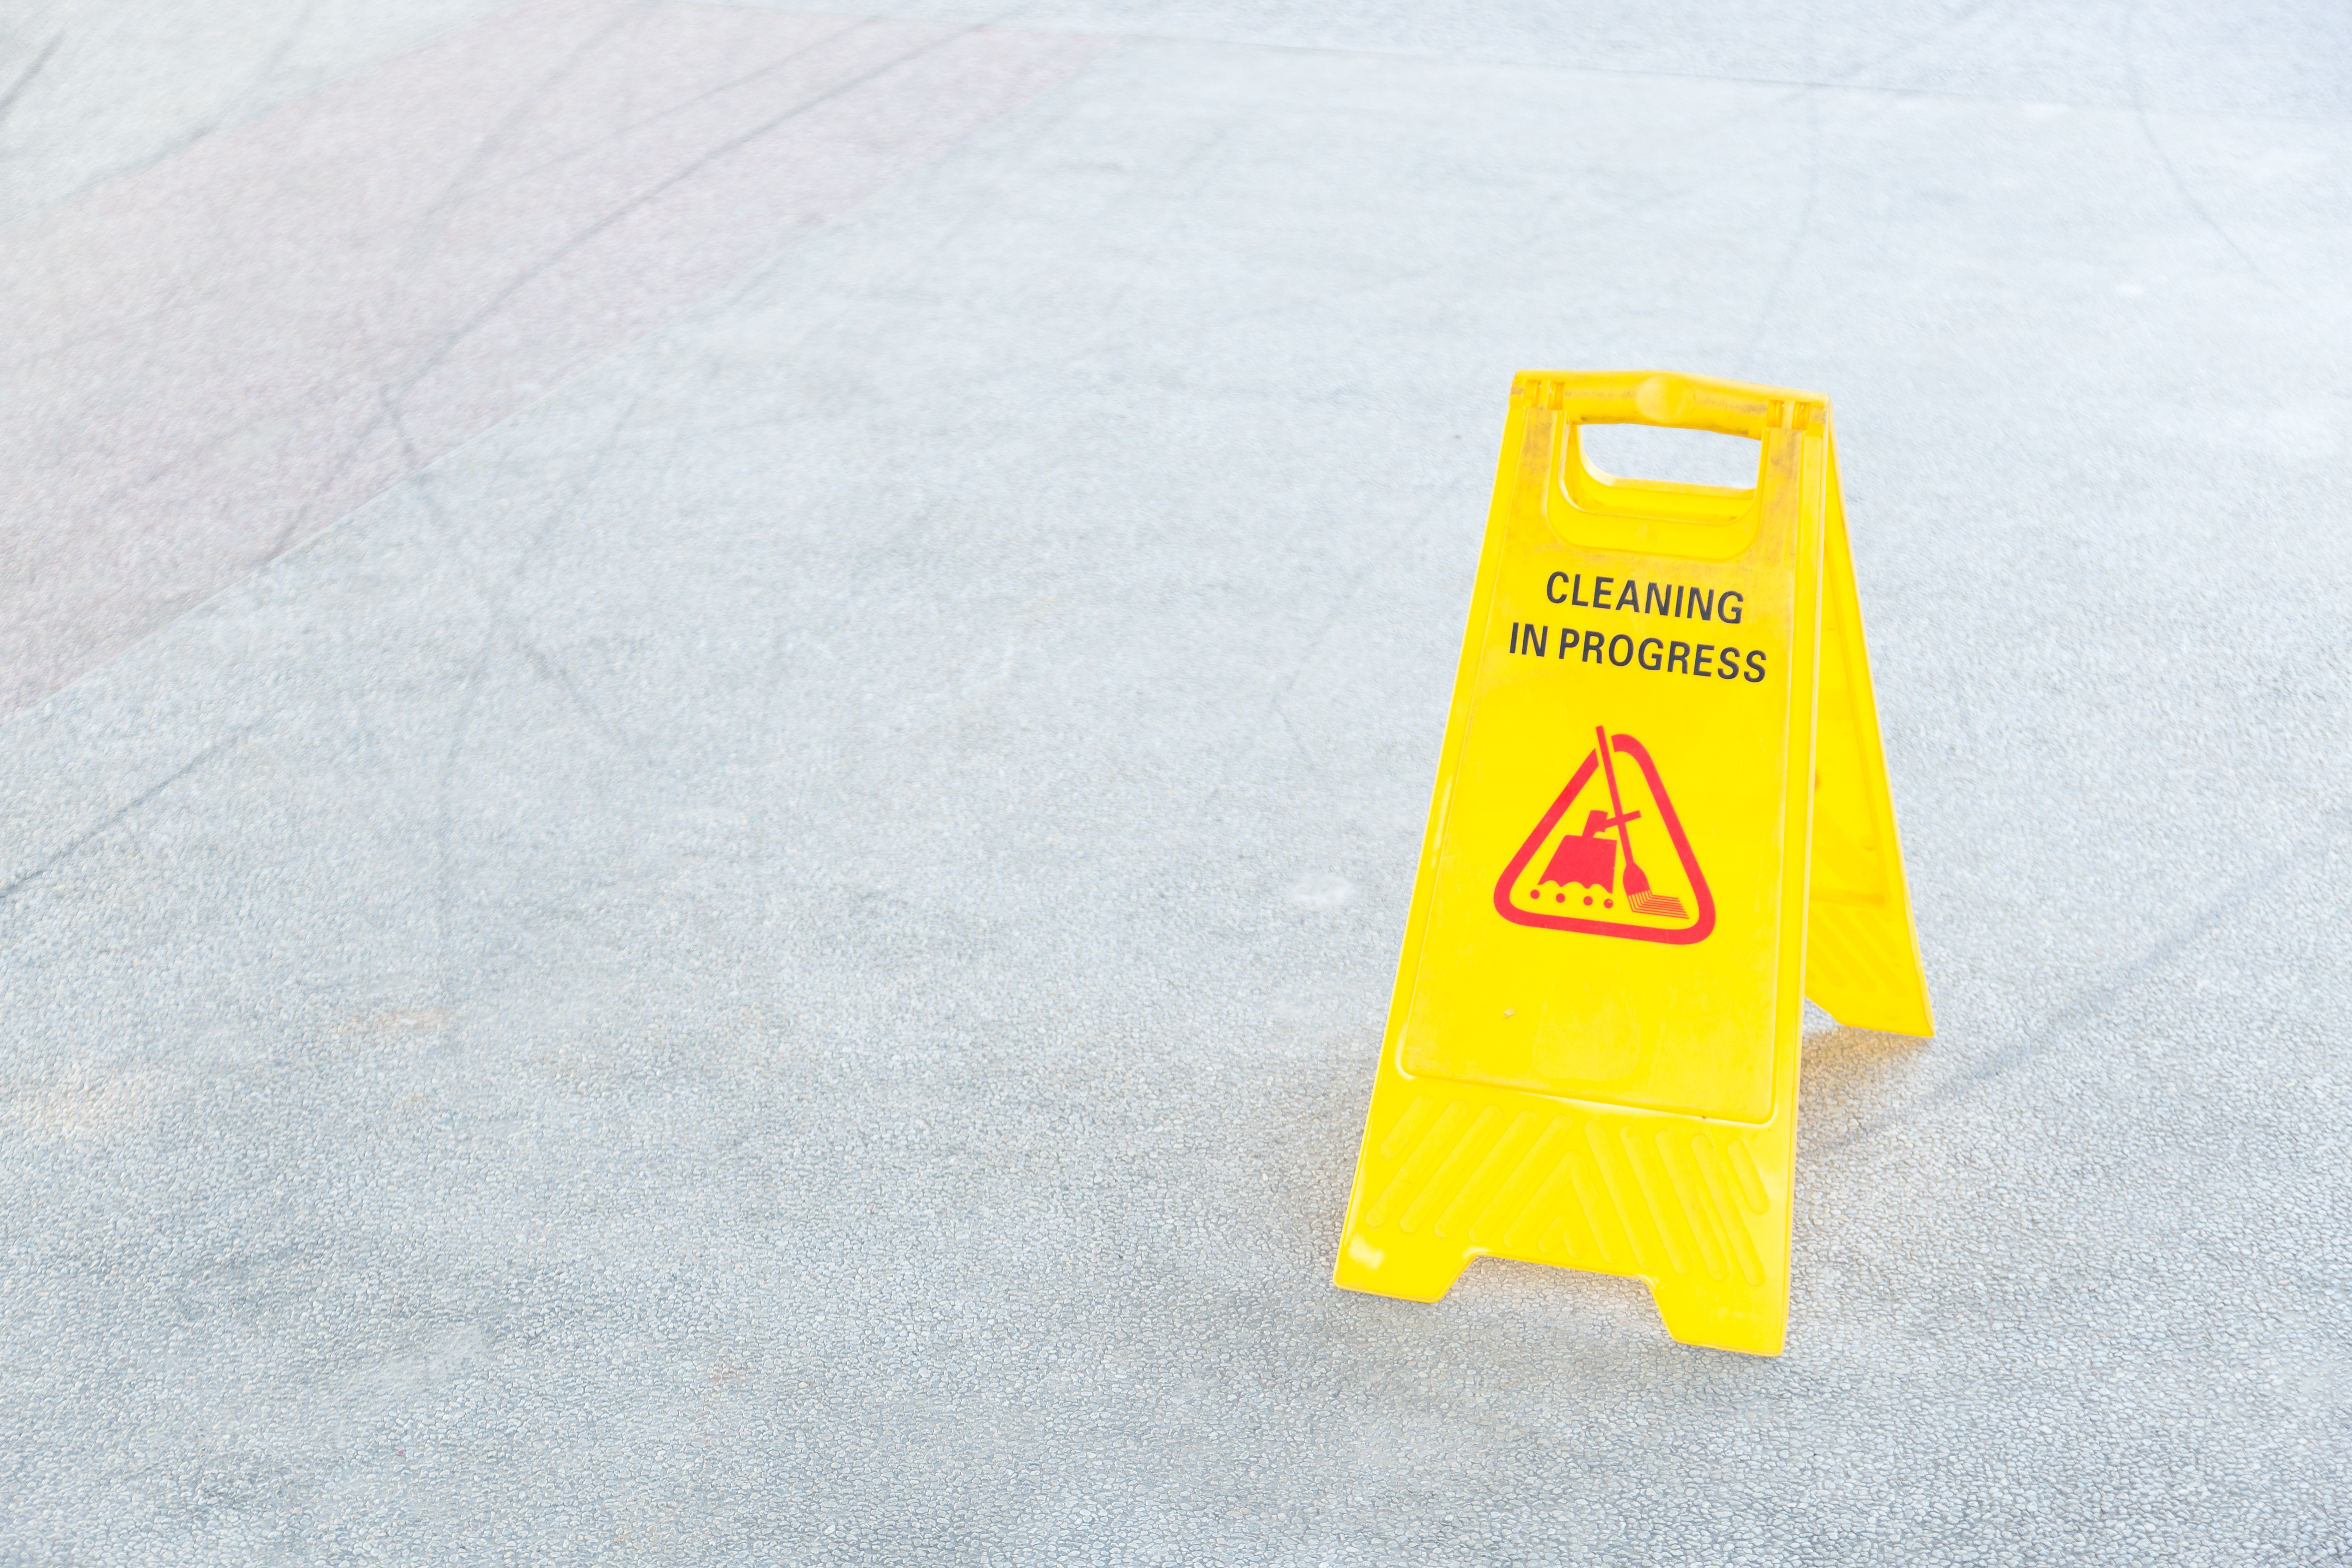 Commercial Buildings: Health And Safety Implications Of Improper Cleaning Processes